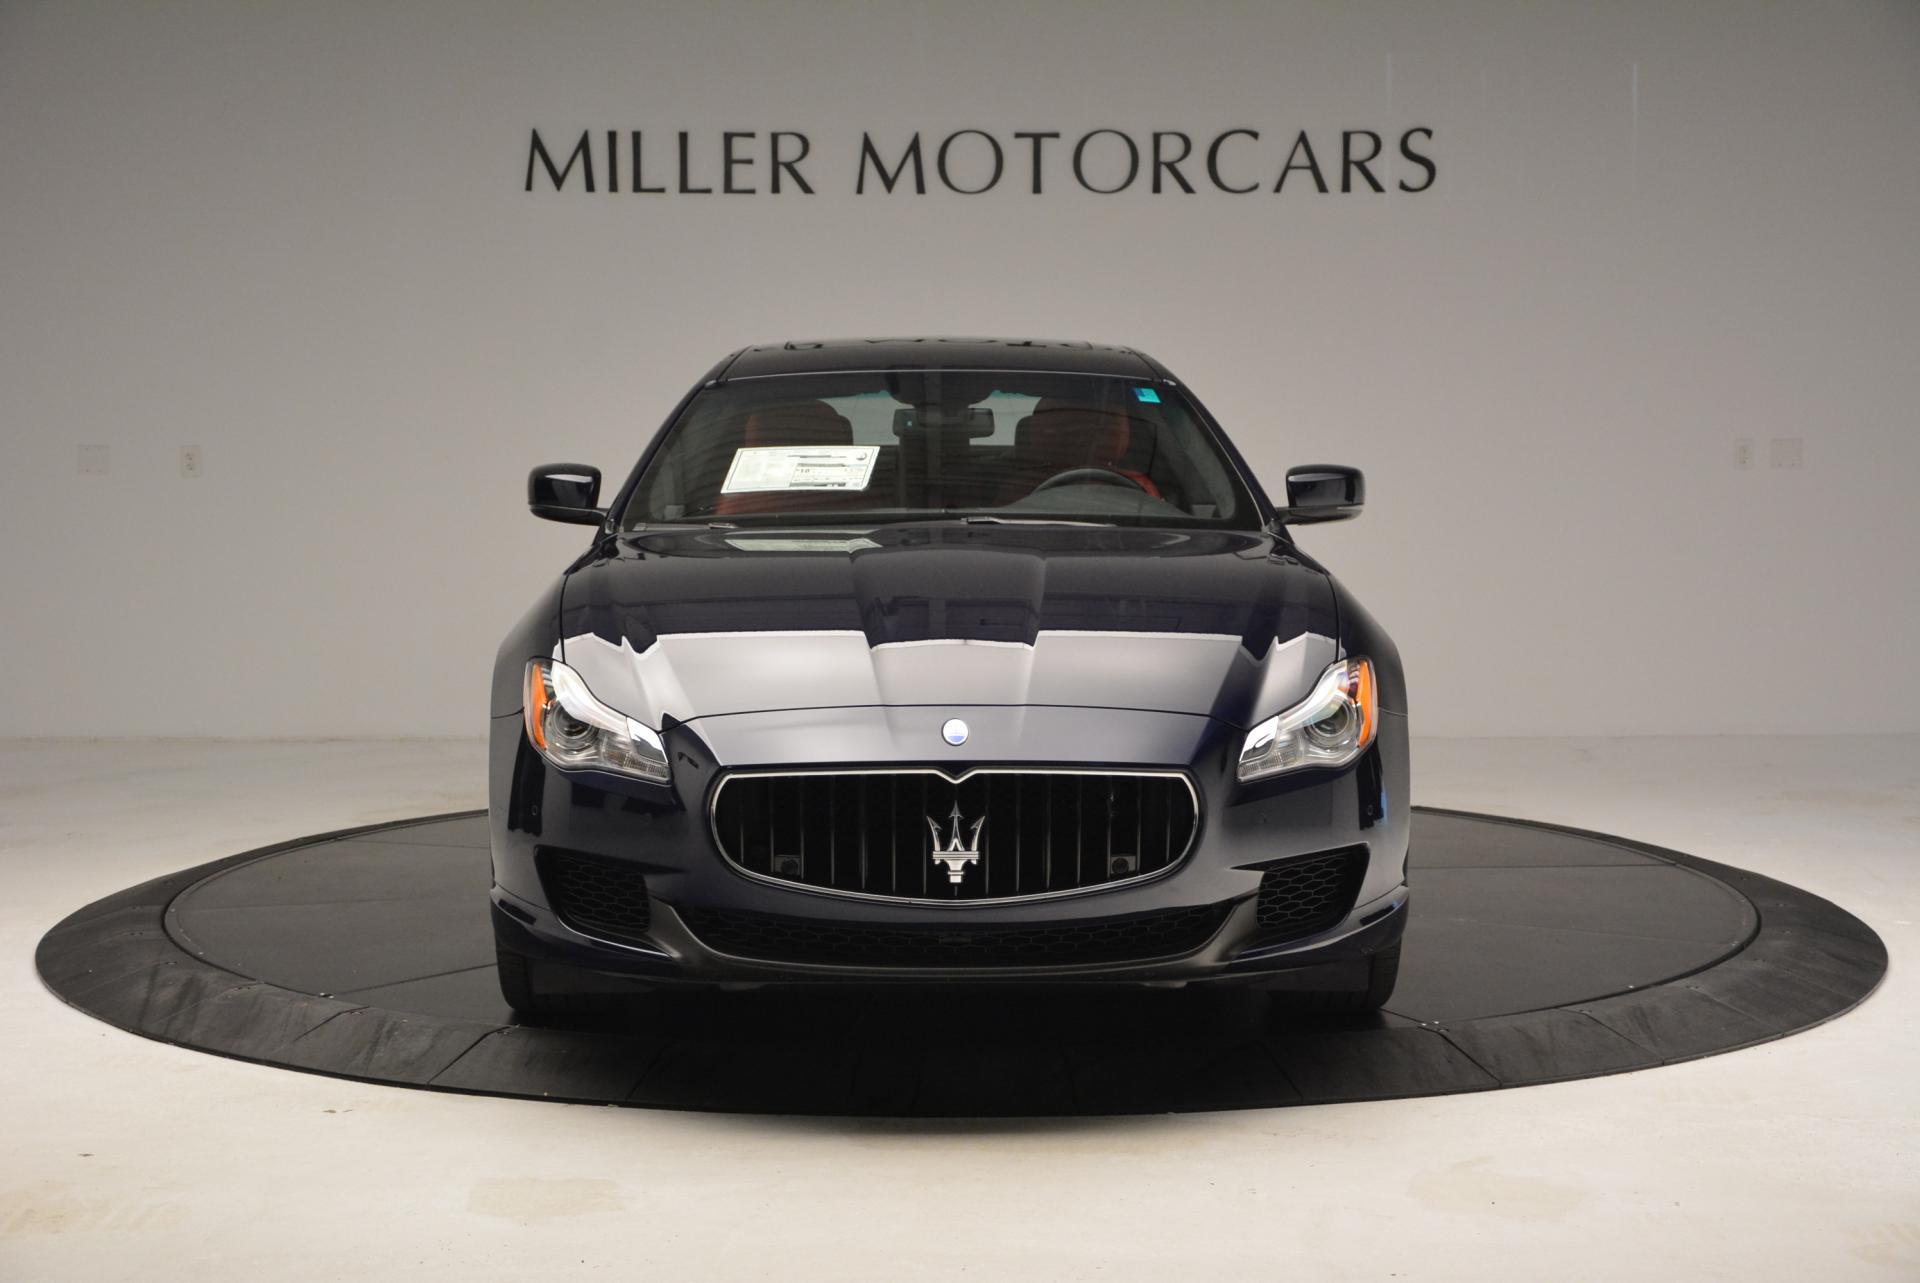 Miller Motorcars Maserati Lease Specials Autos Post